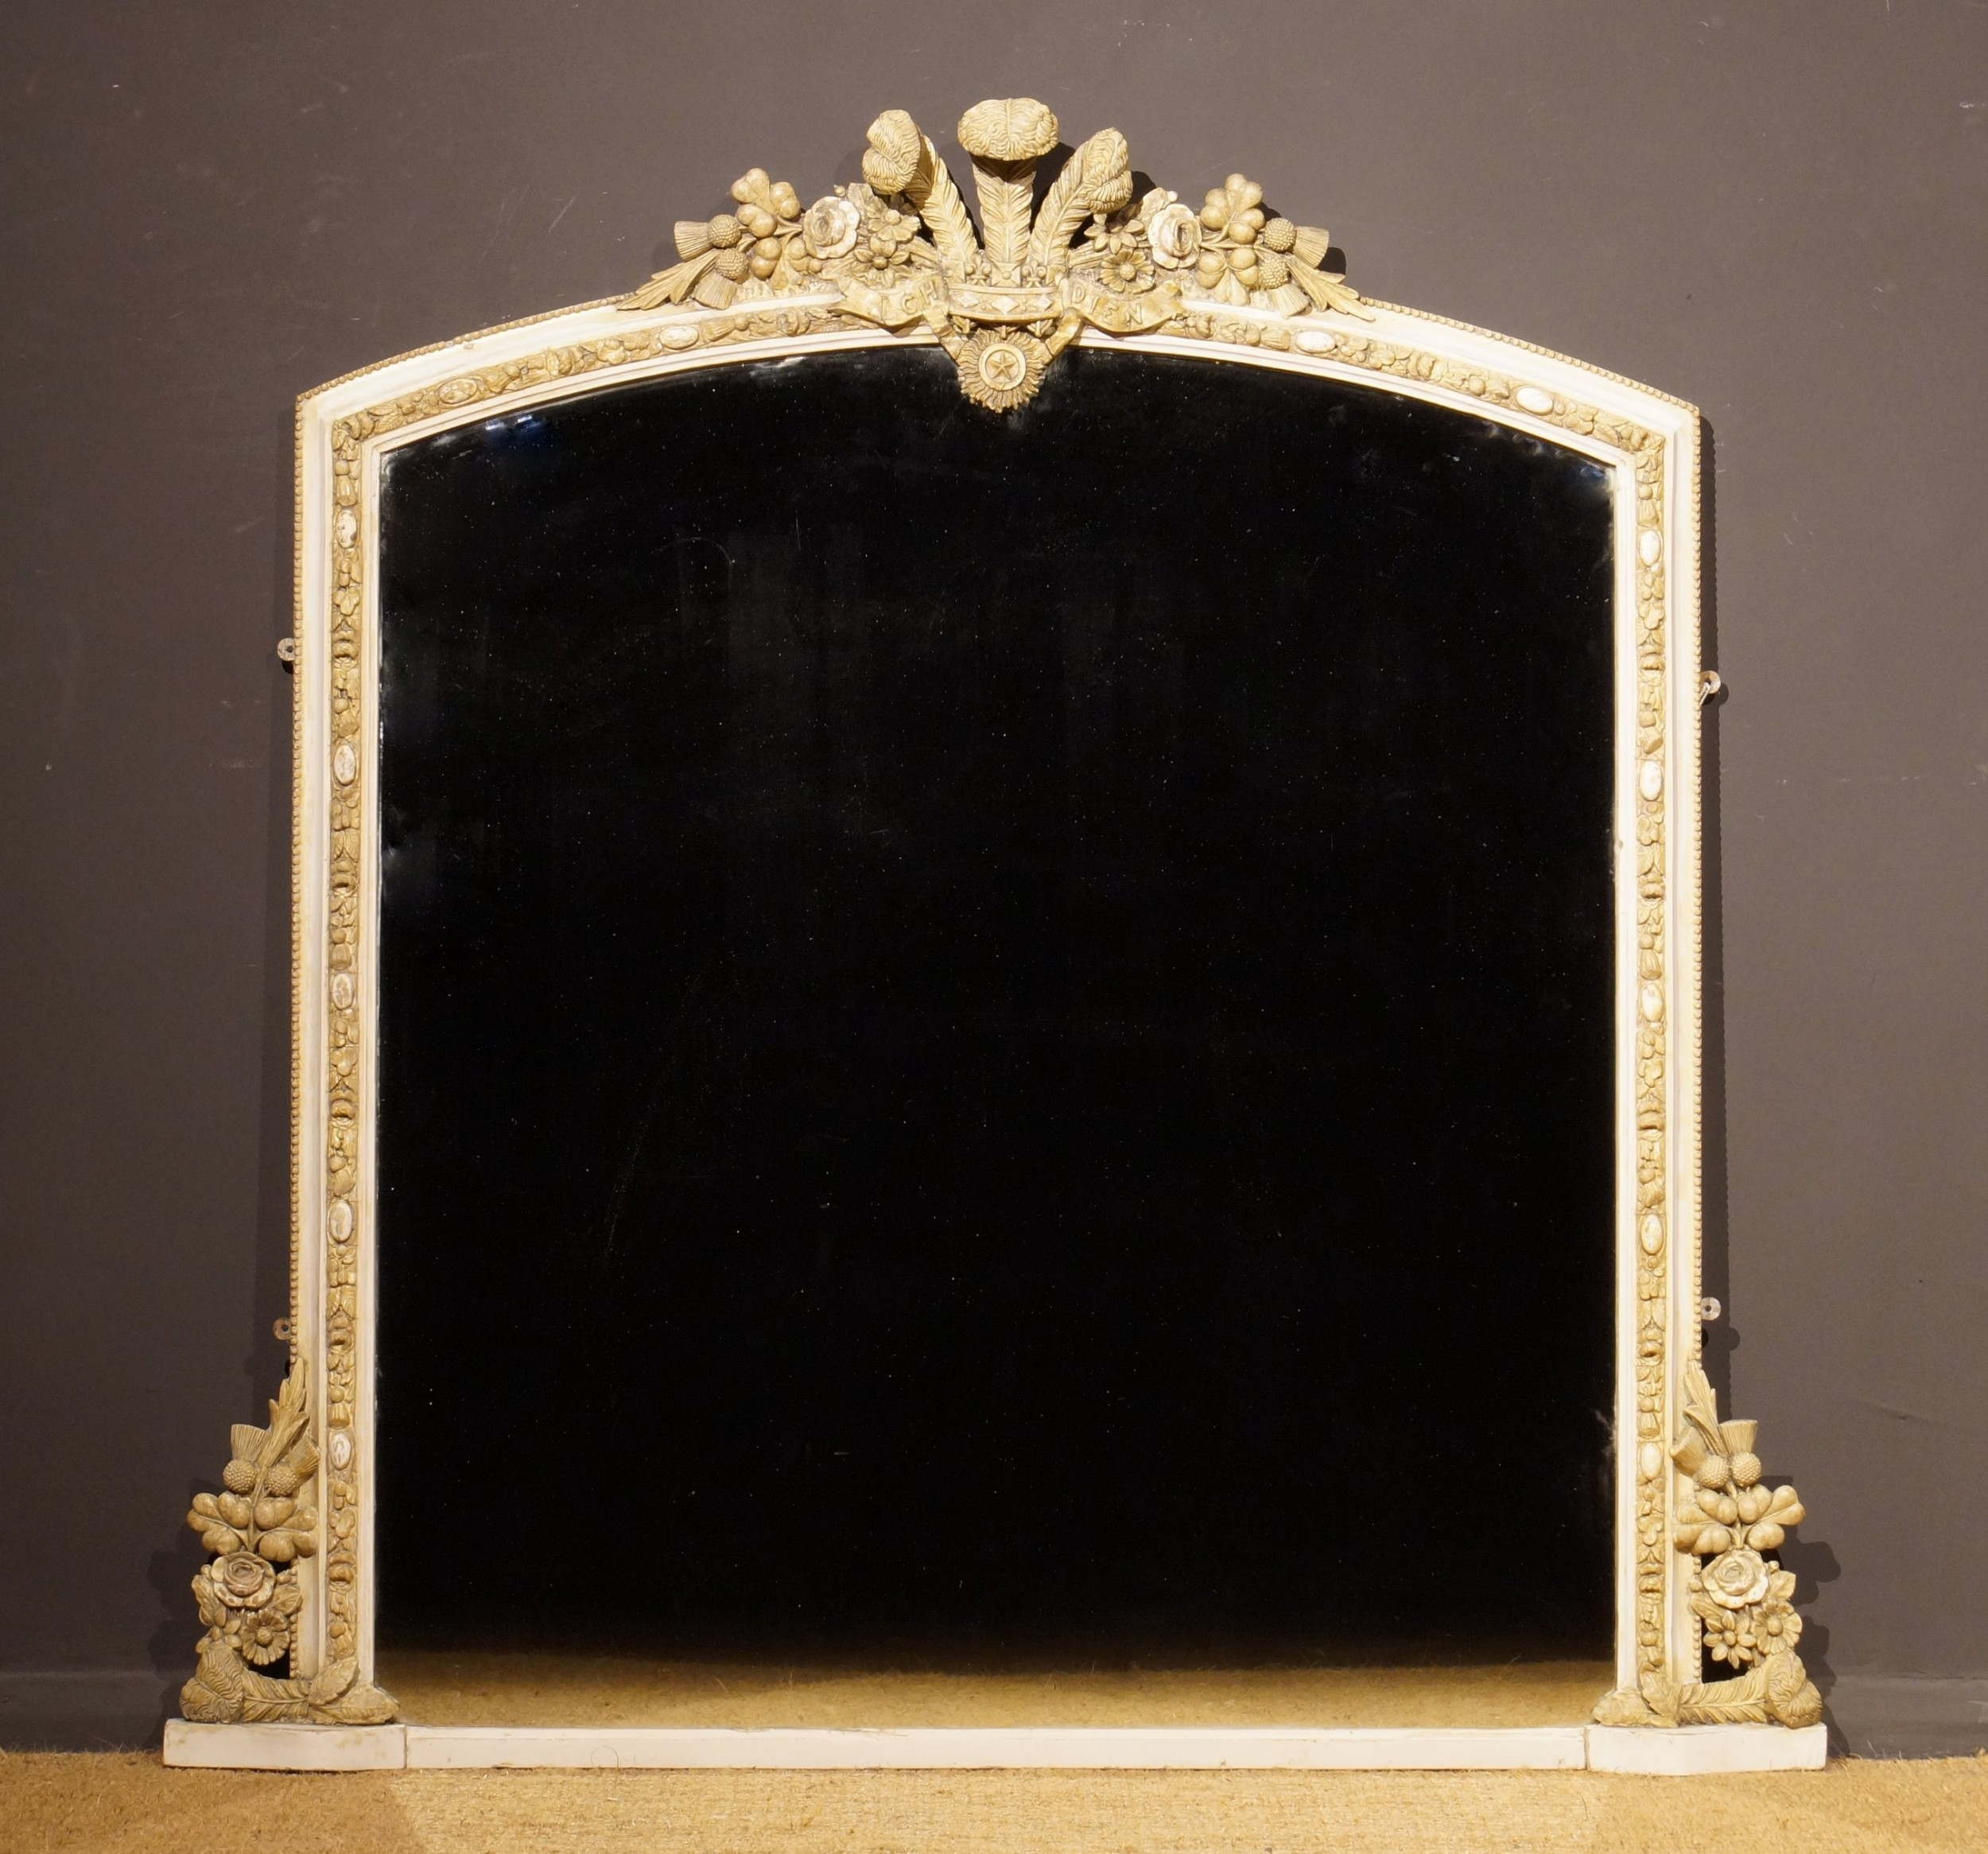 19th century gesso overmantle mirror with the prince of wales feathers and motto